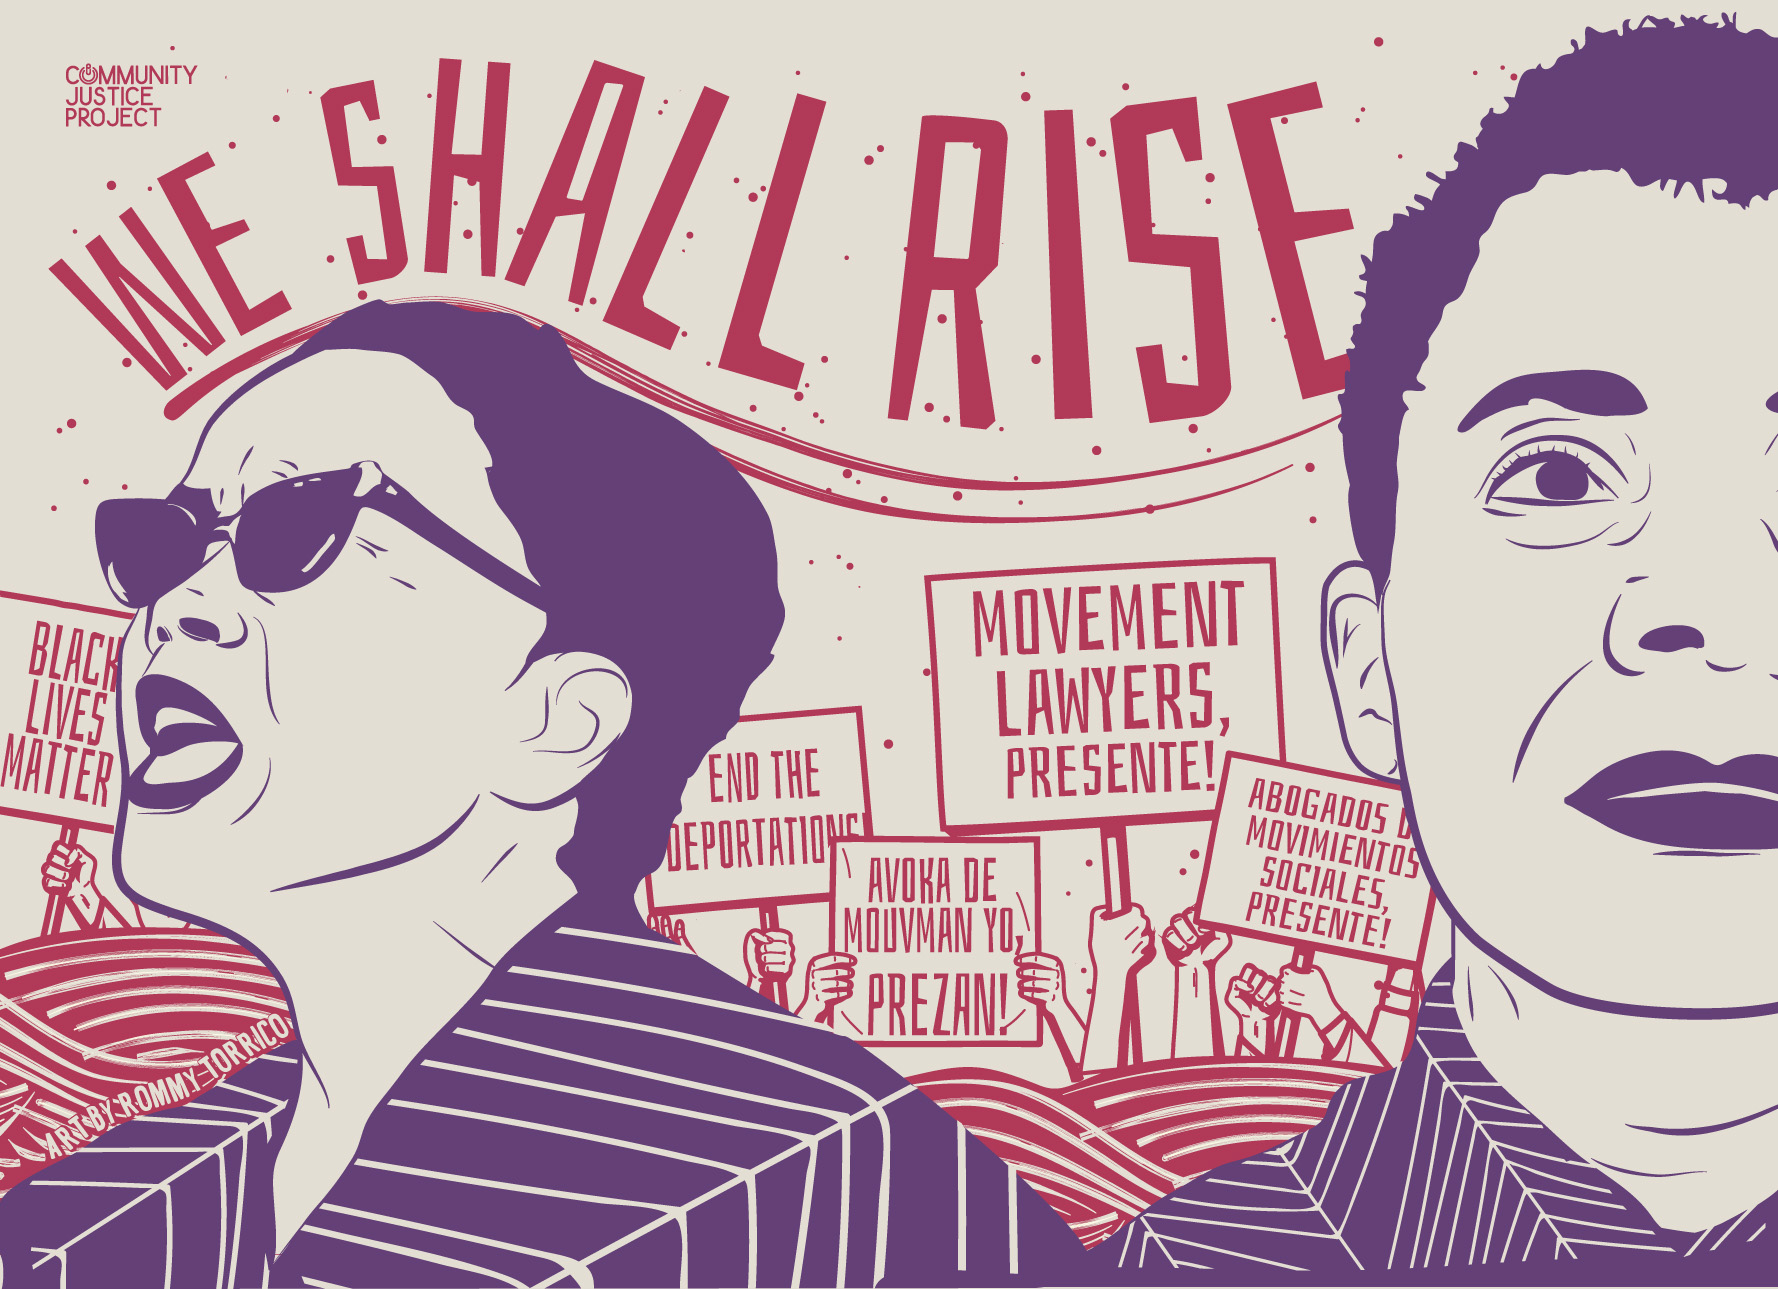 Movement Lawyers- We Shall Rise